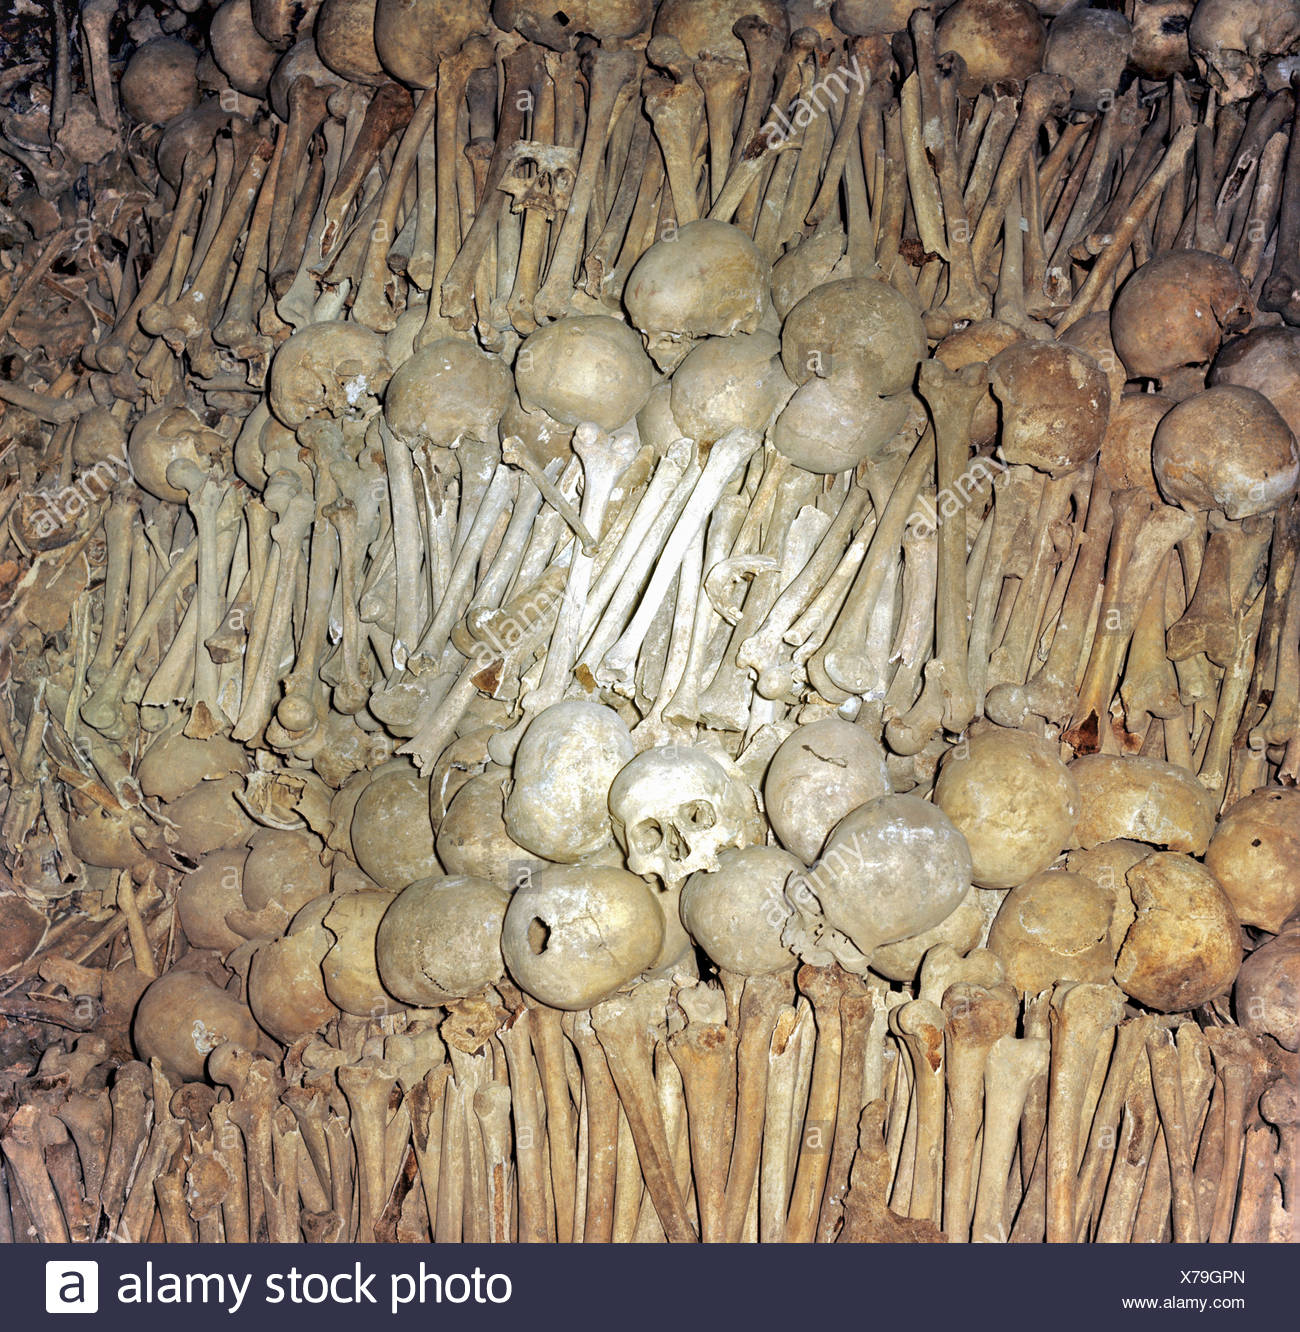 Ossuary or charnel house, St. Michael's Church, Schwaebisch Hall, Baden-Wuerttemberg, Germany - Stock Image